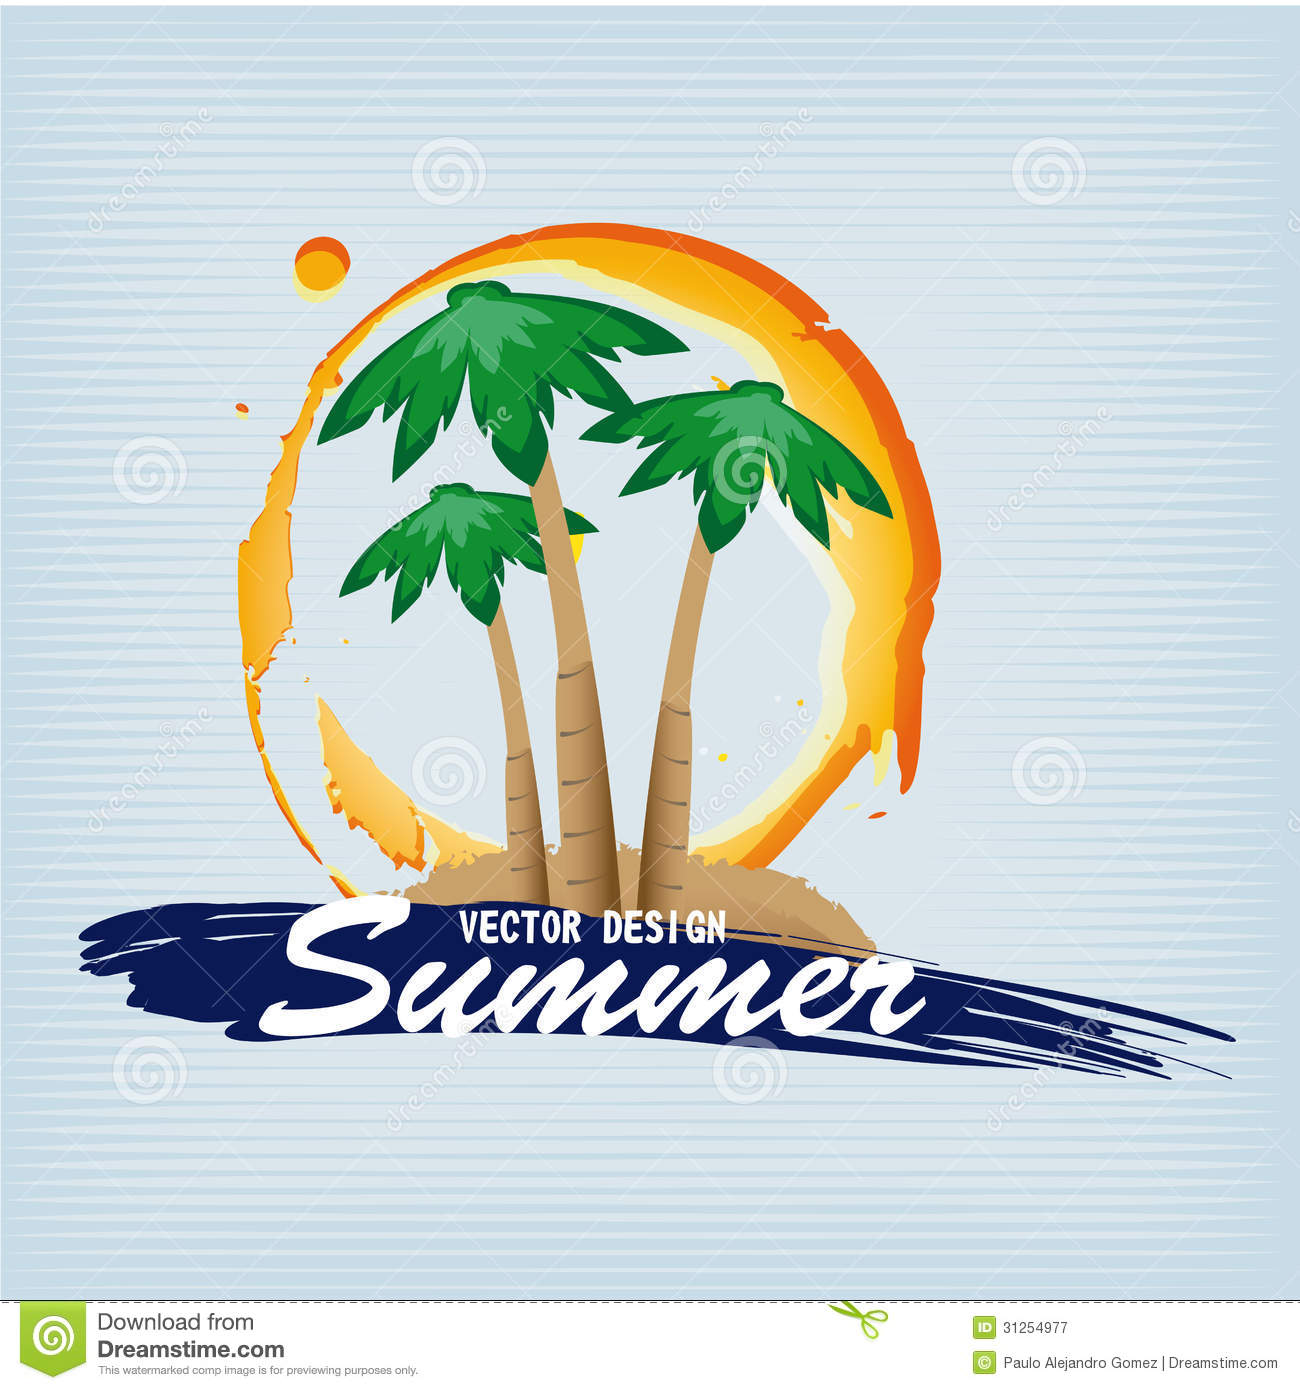 summer vector illustraitons - photo #24